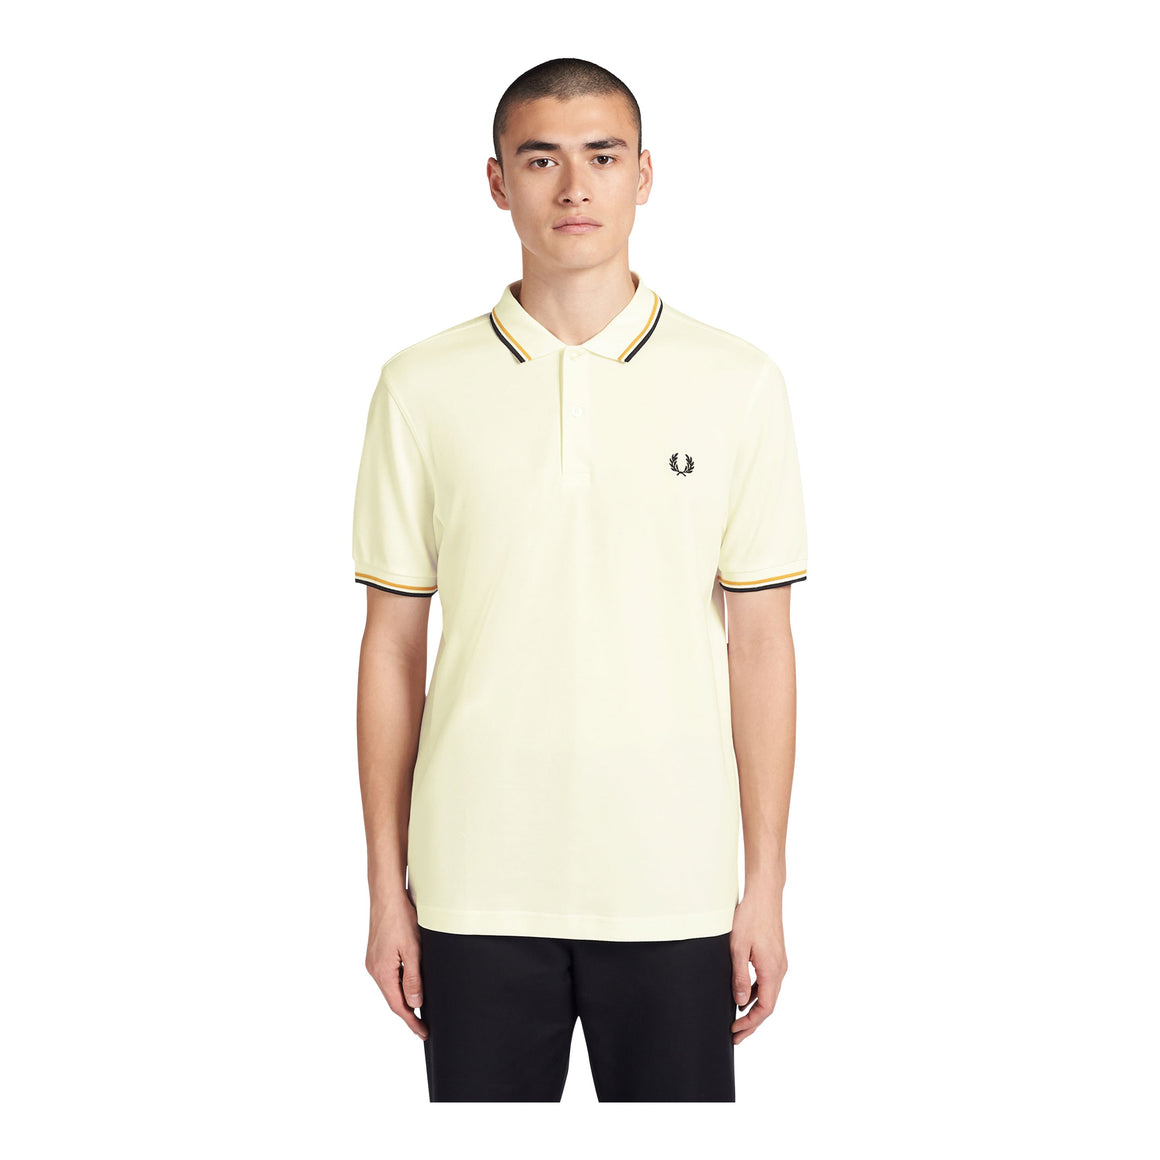 Twin Tipped Polo Shirt for Men in Snow White